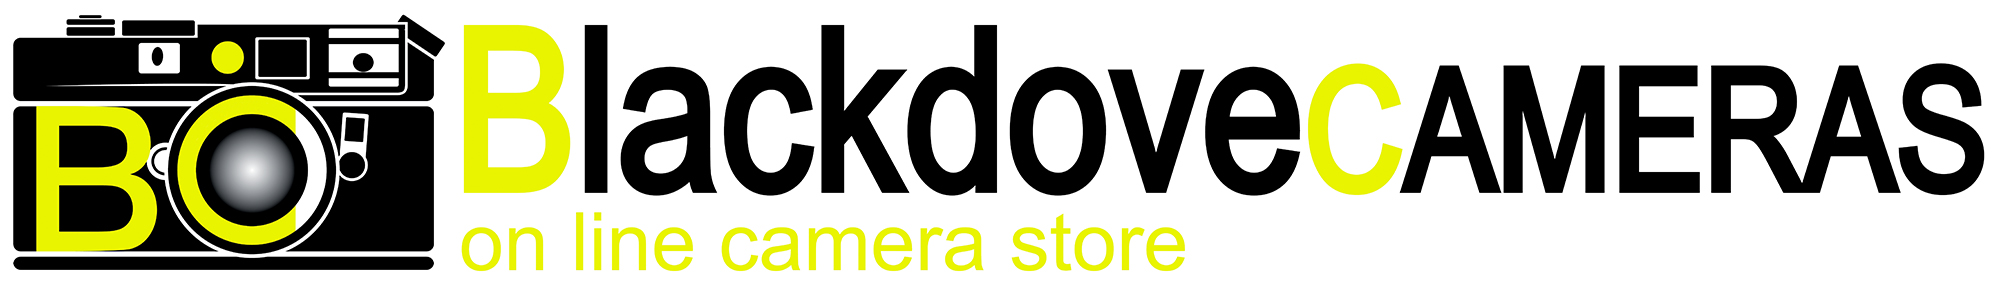 "logo blackdove-cameras.it""></td> <td align="